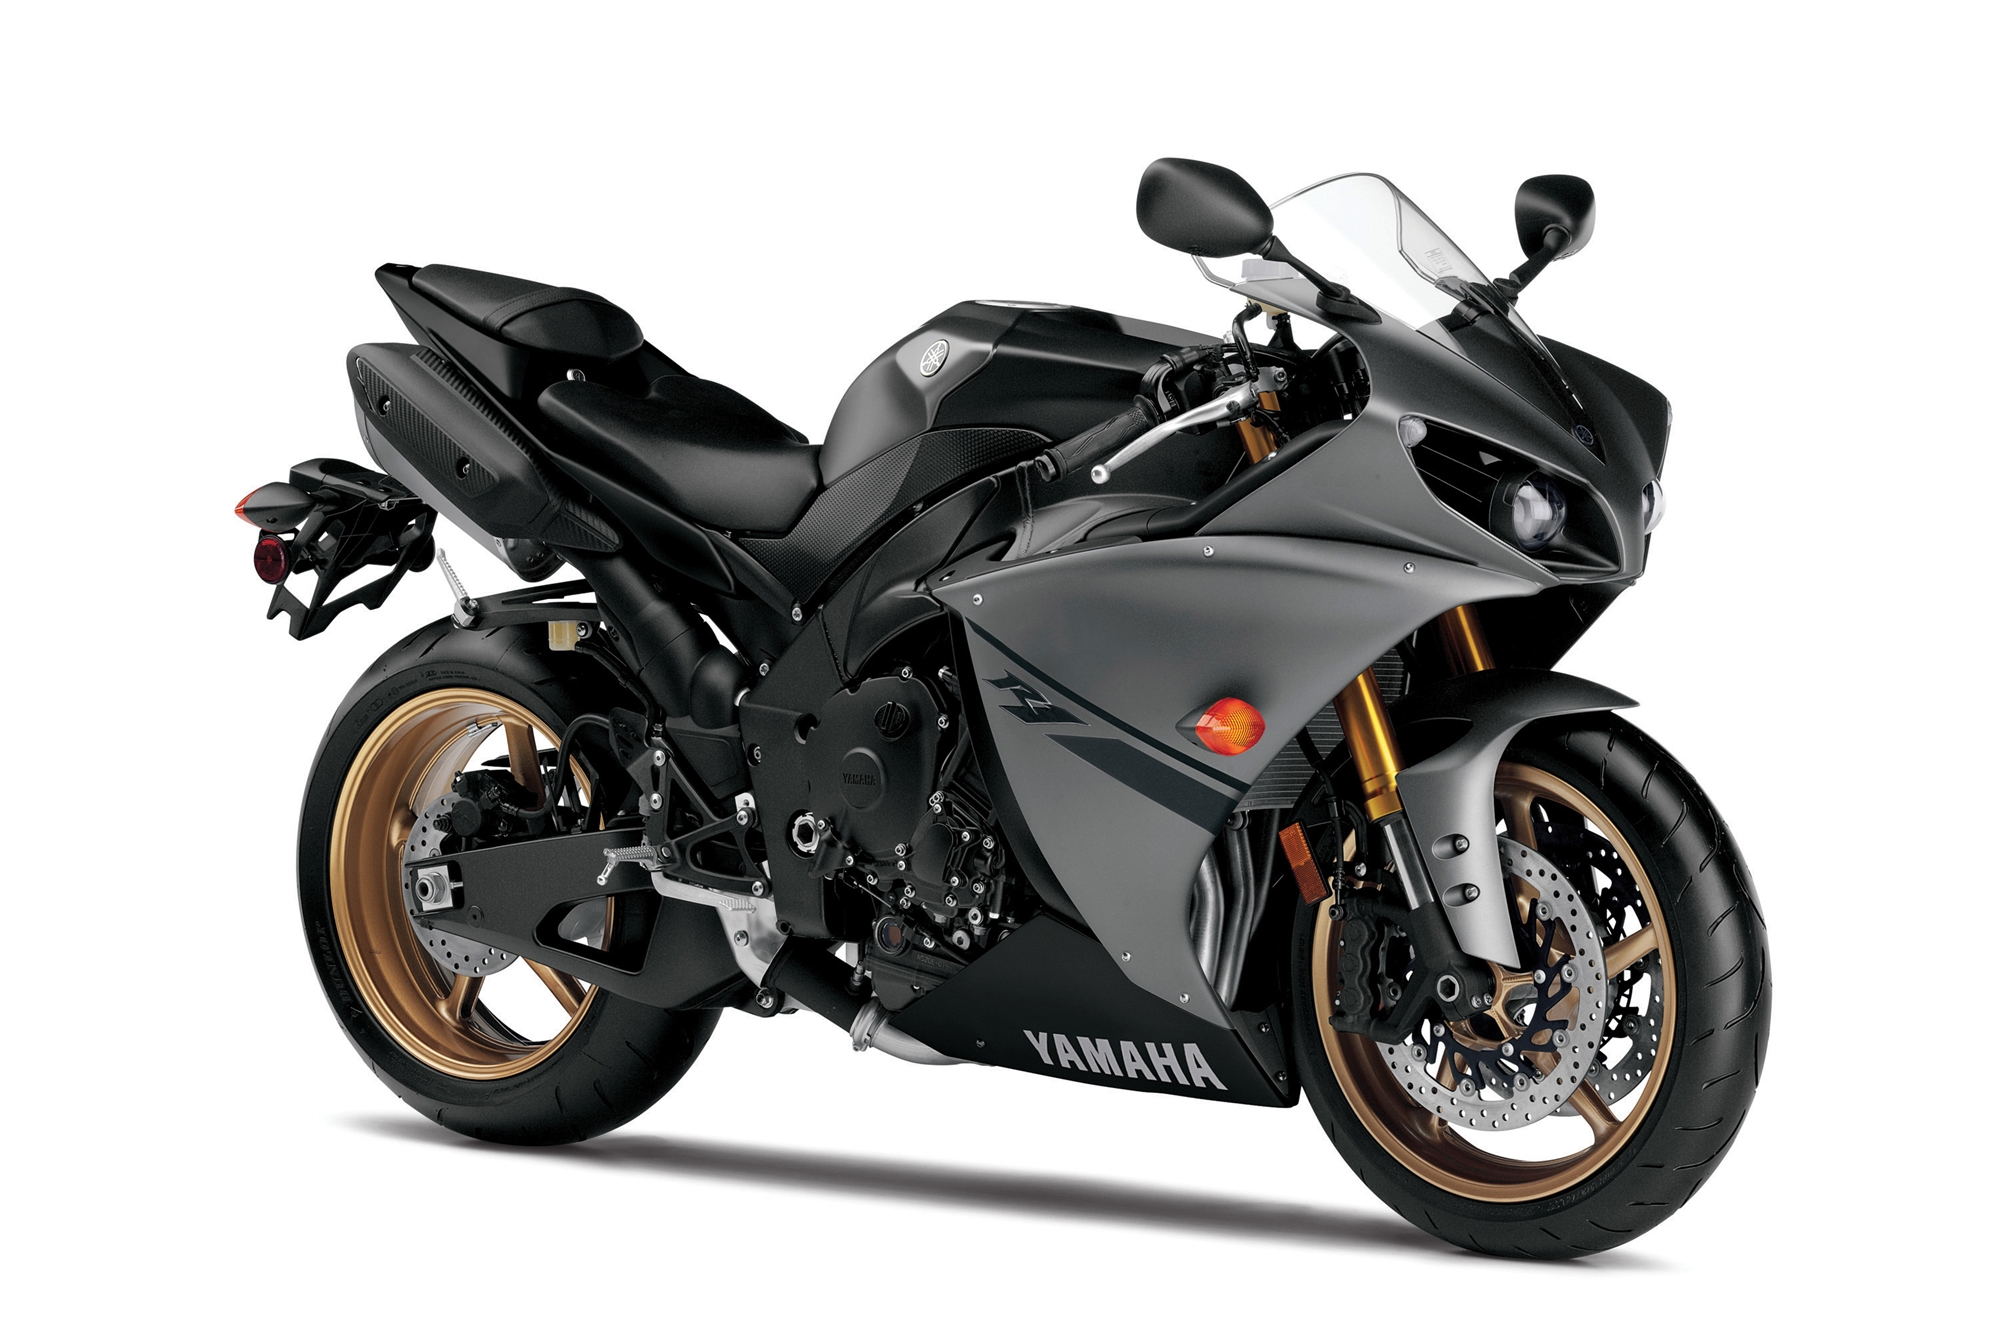 2014 Yamaha Yzf R1 Official Pictures And Prices